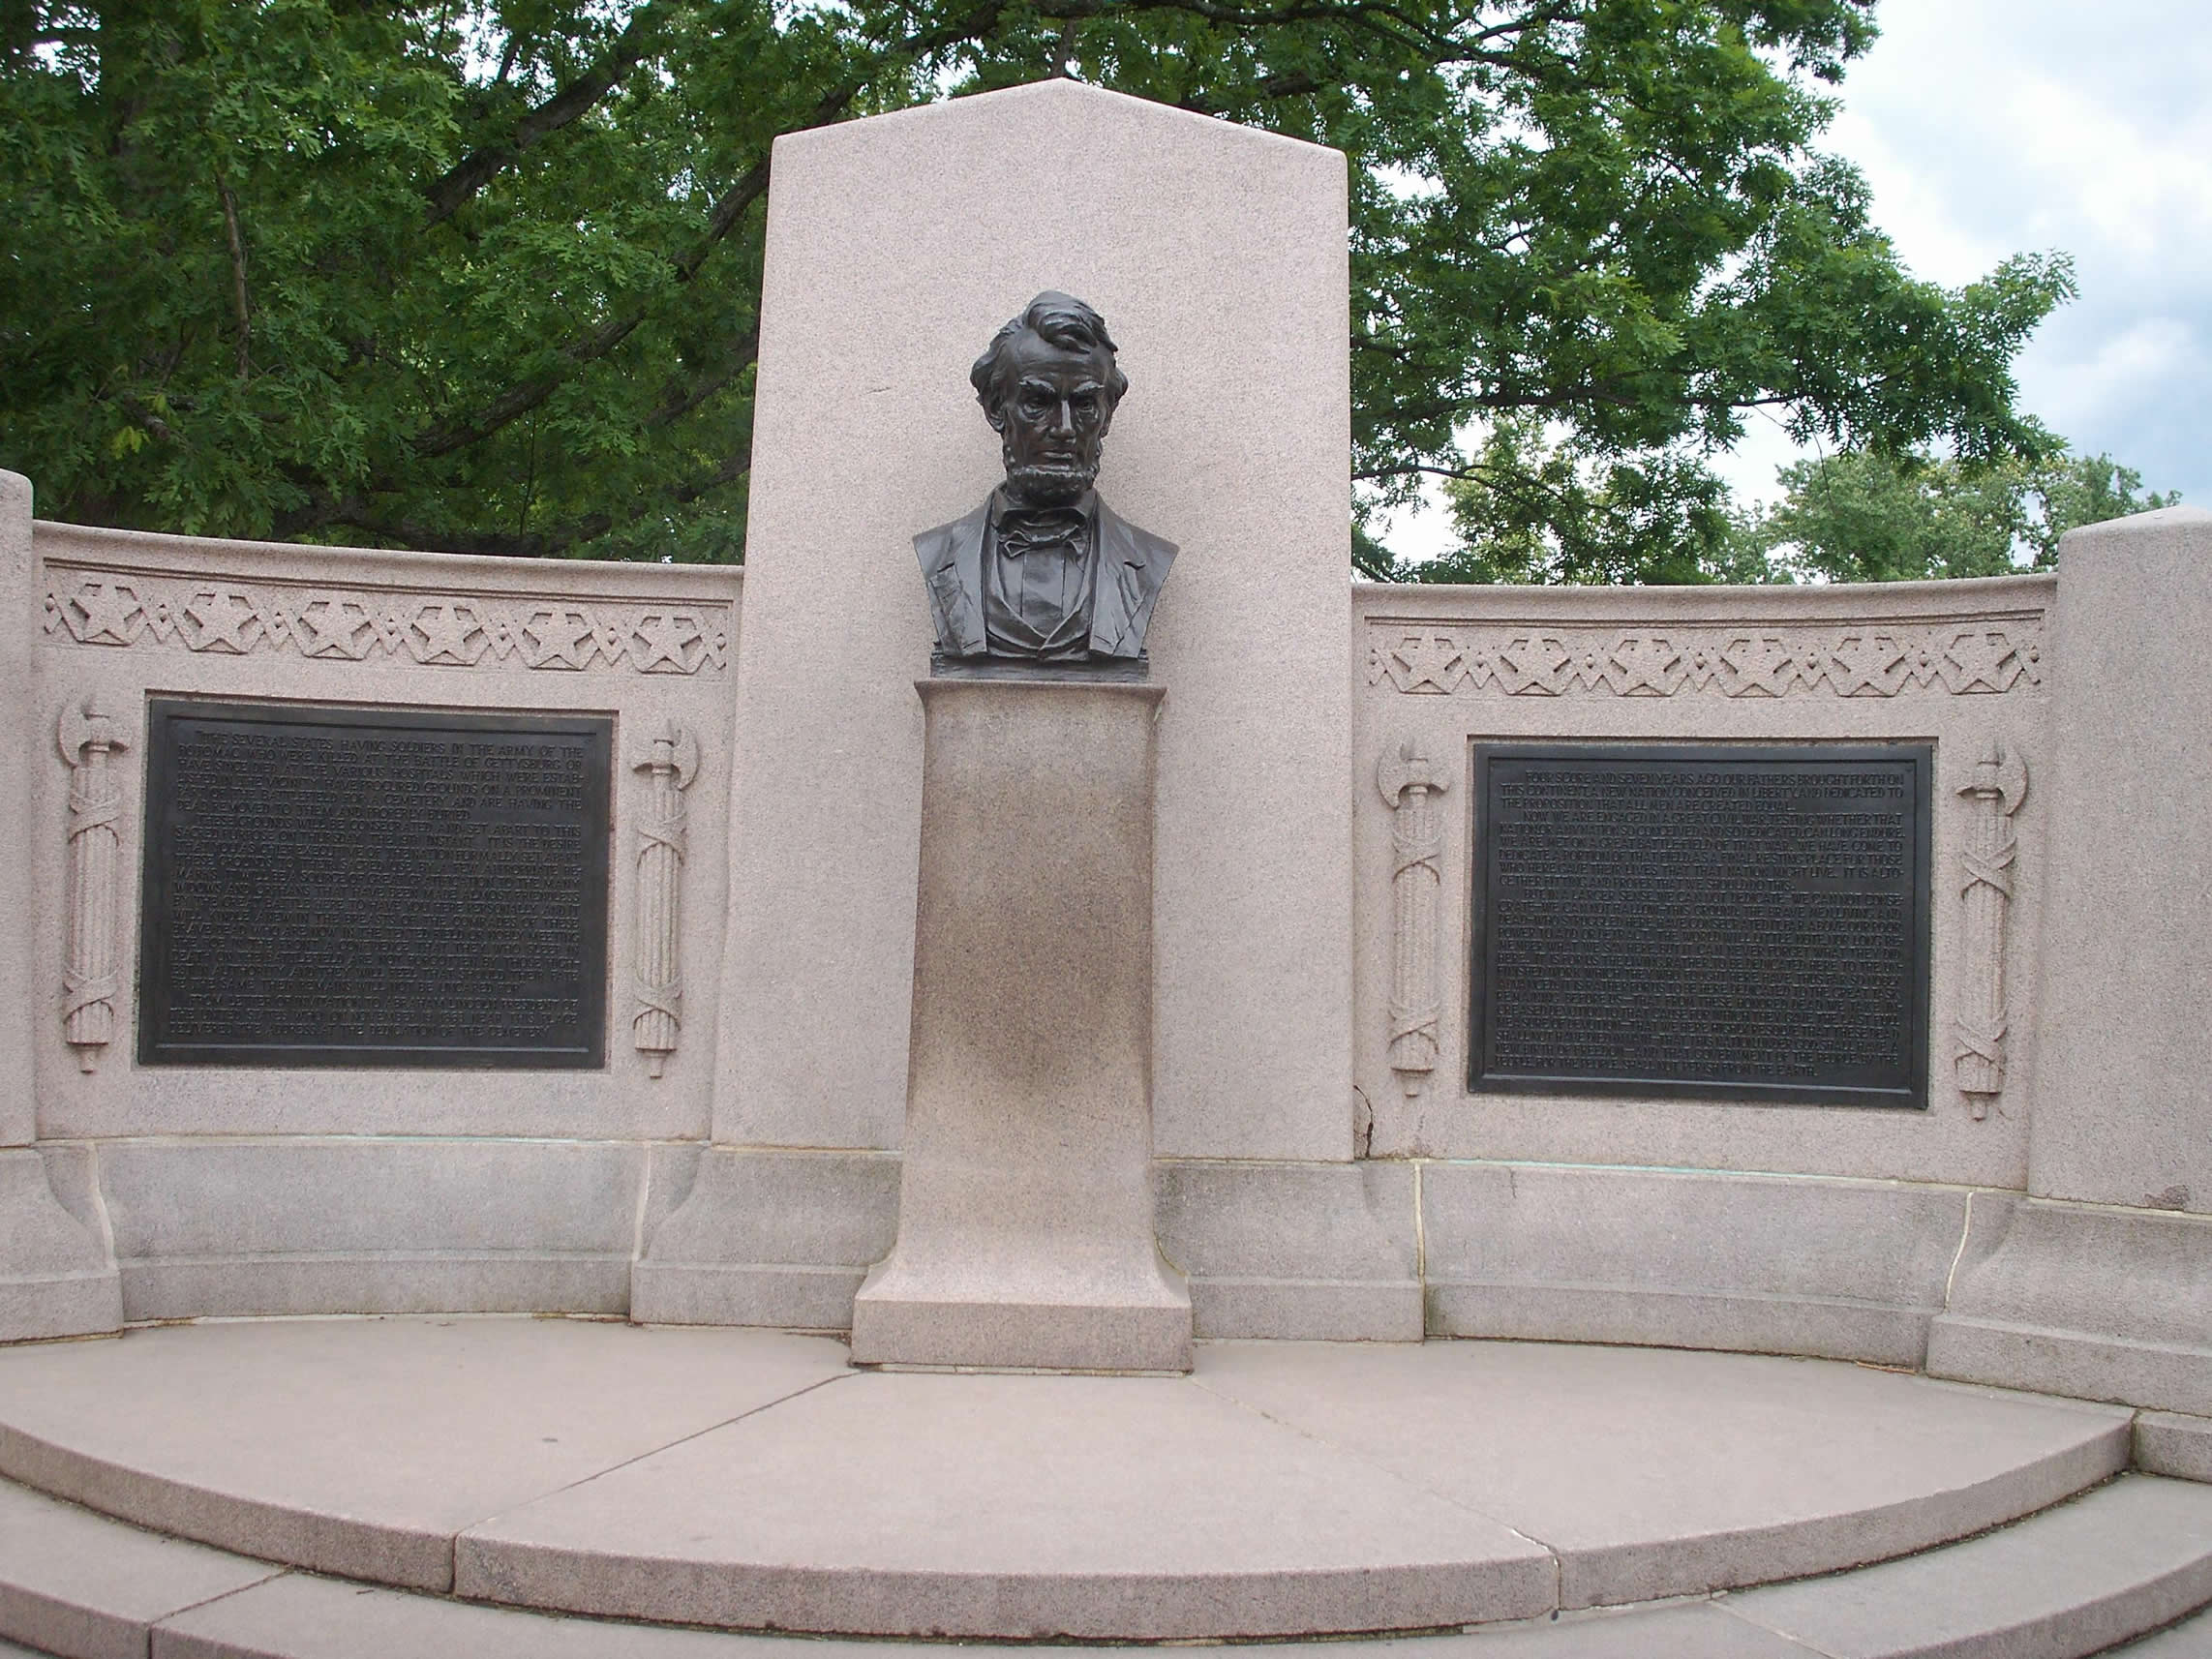 The Lincoln Address Memorial, designed by Louis Henrick, with bust of Abraham Lincoln by Henry Kirke Bush-Brown, erected at the Gettysburg National Cemetery in 1912.